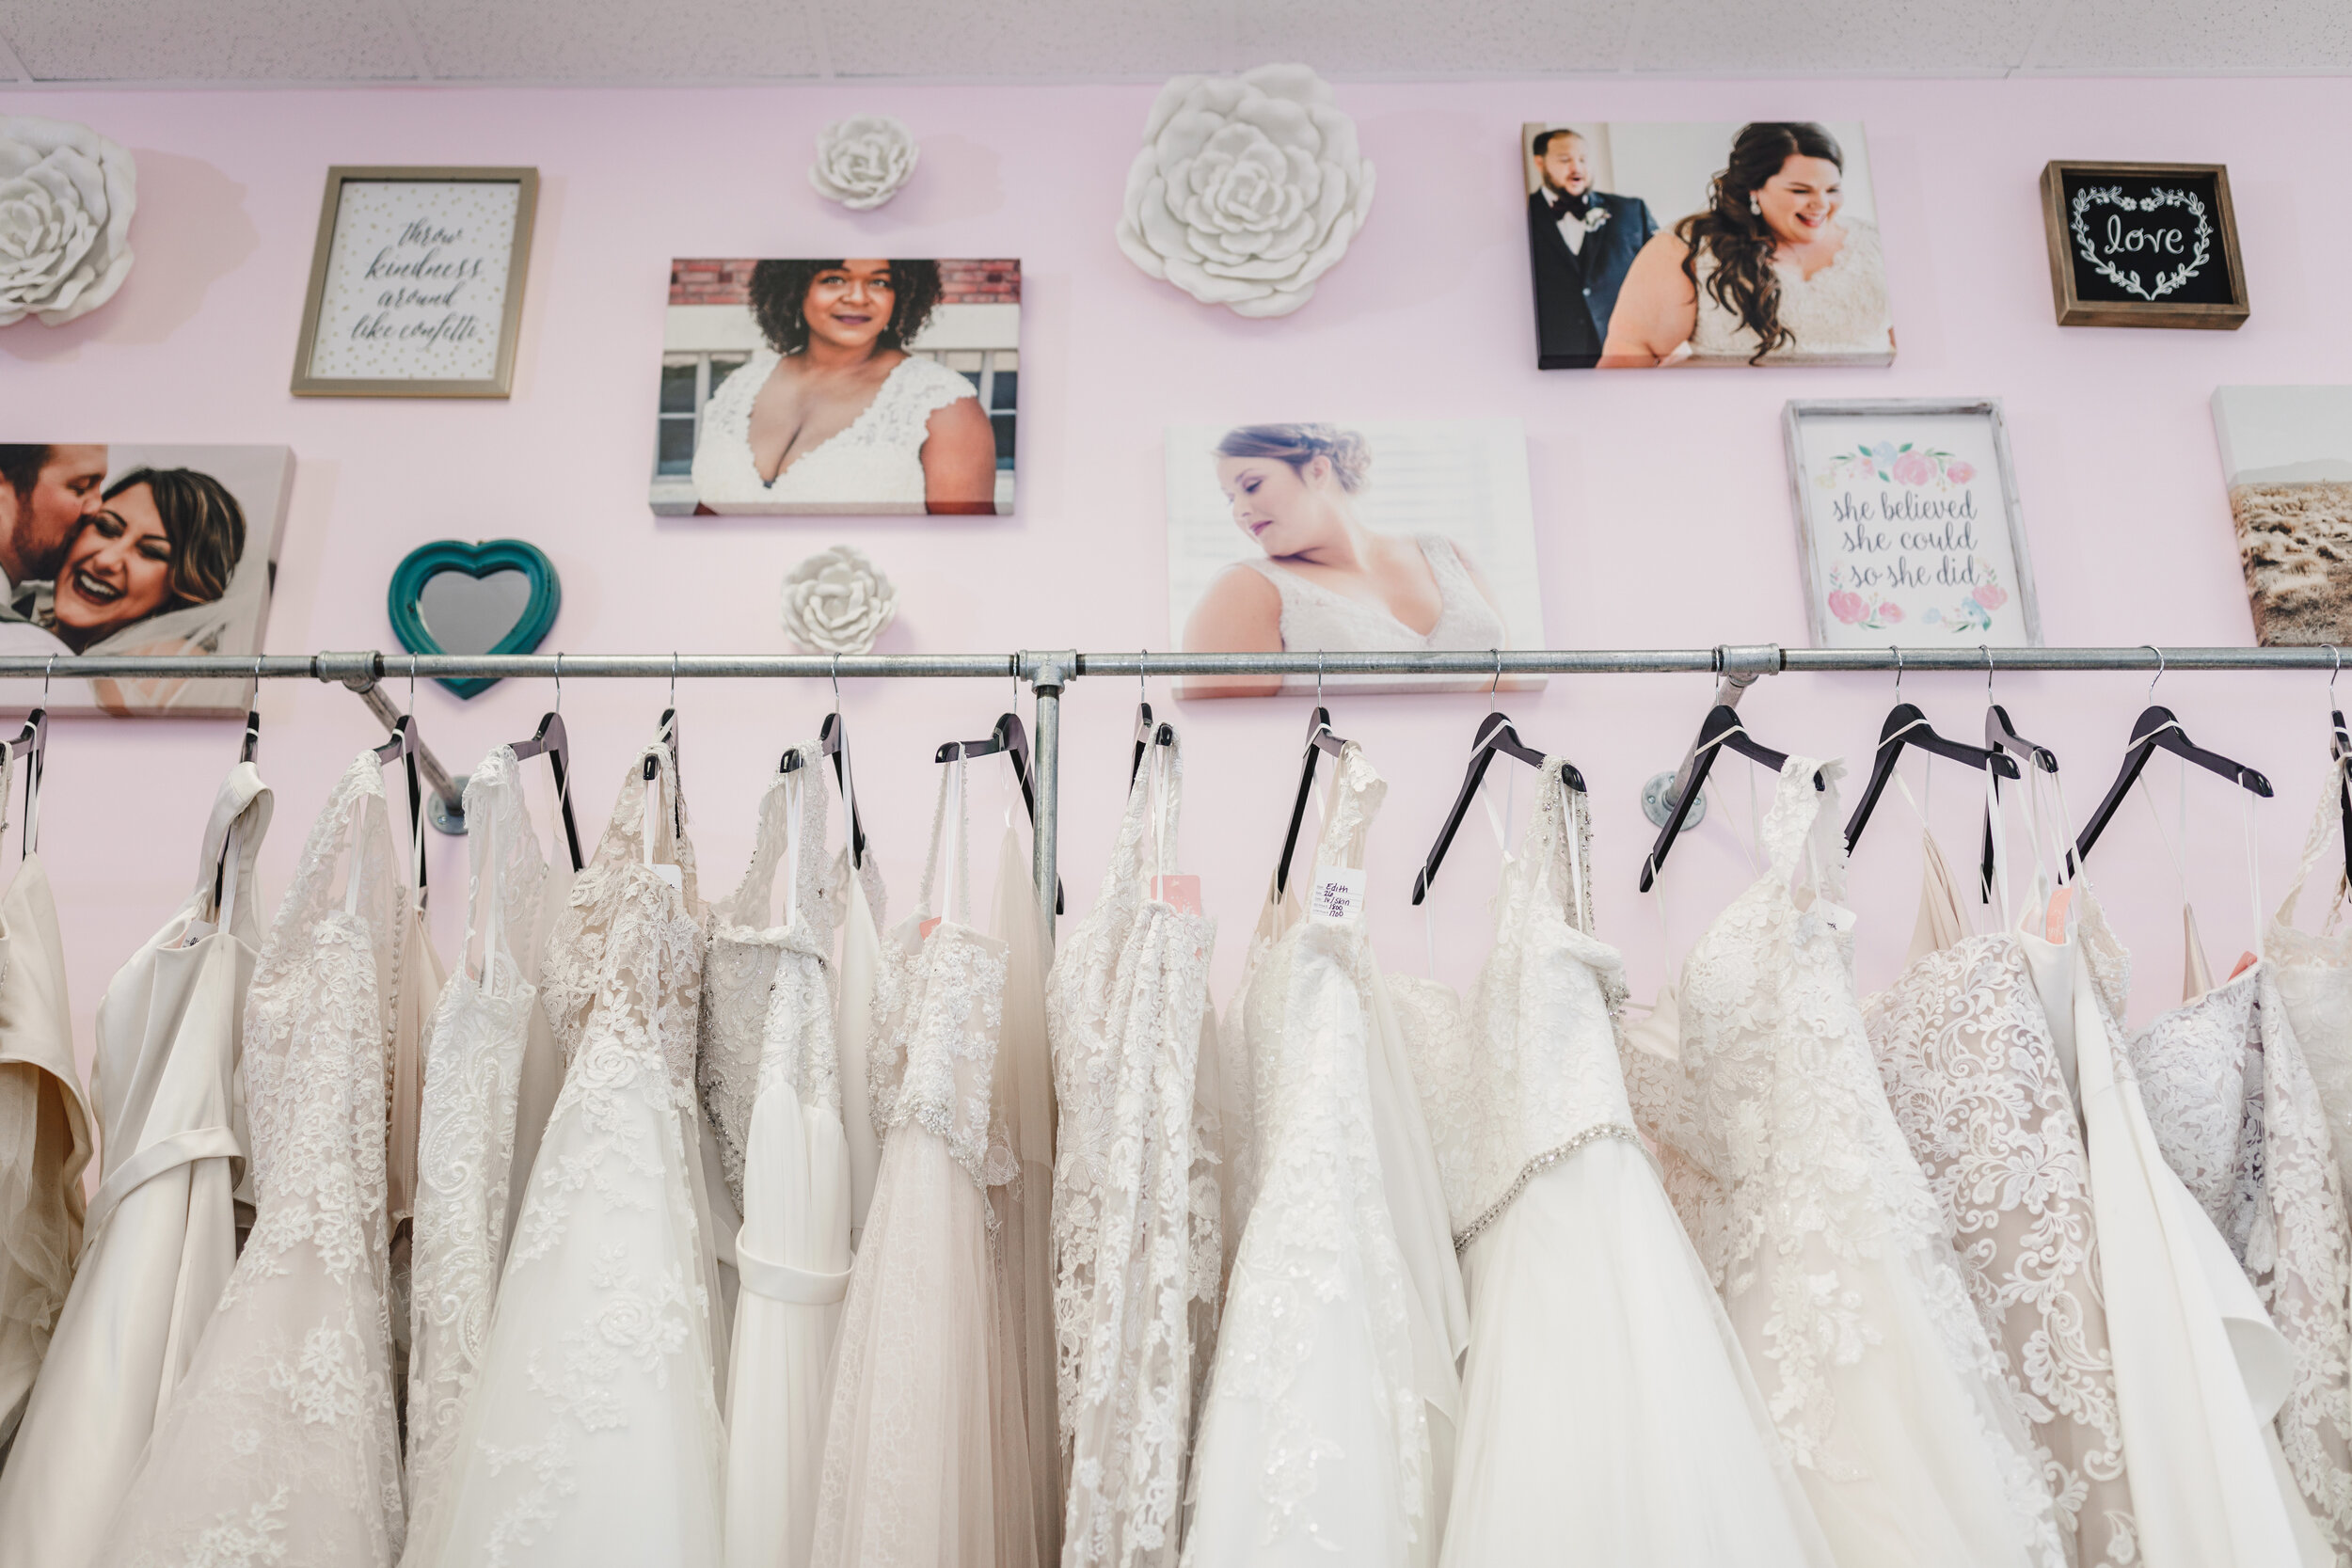 Dresses at All My Heart Bridal - Kelsey Diane Photography